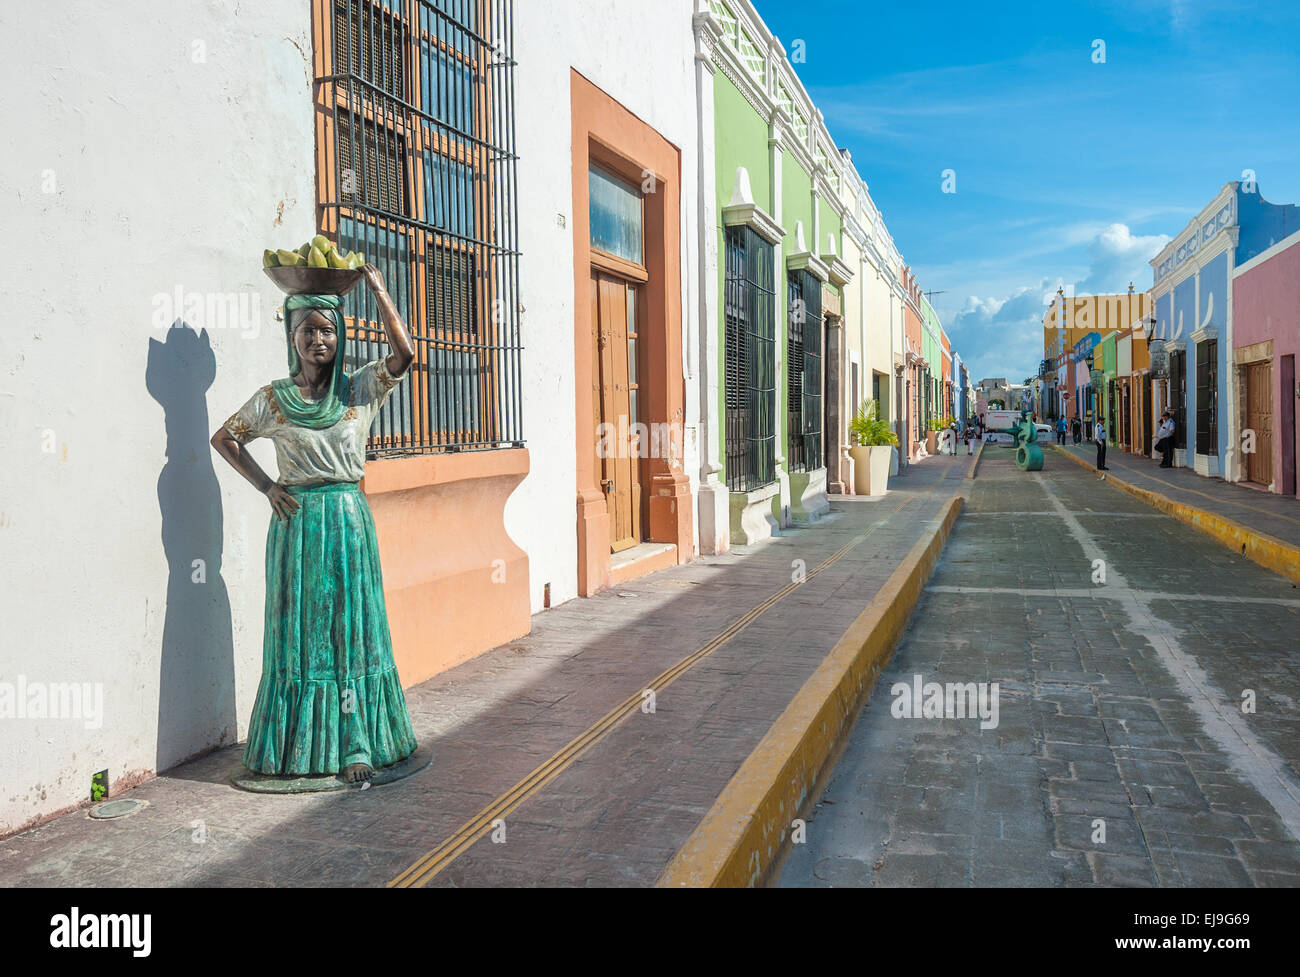 Streets of Campeche colonial town, Mexico Stock Photo